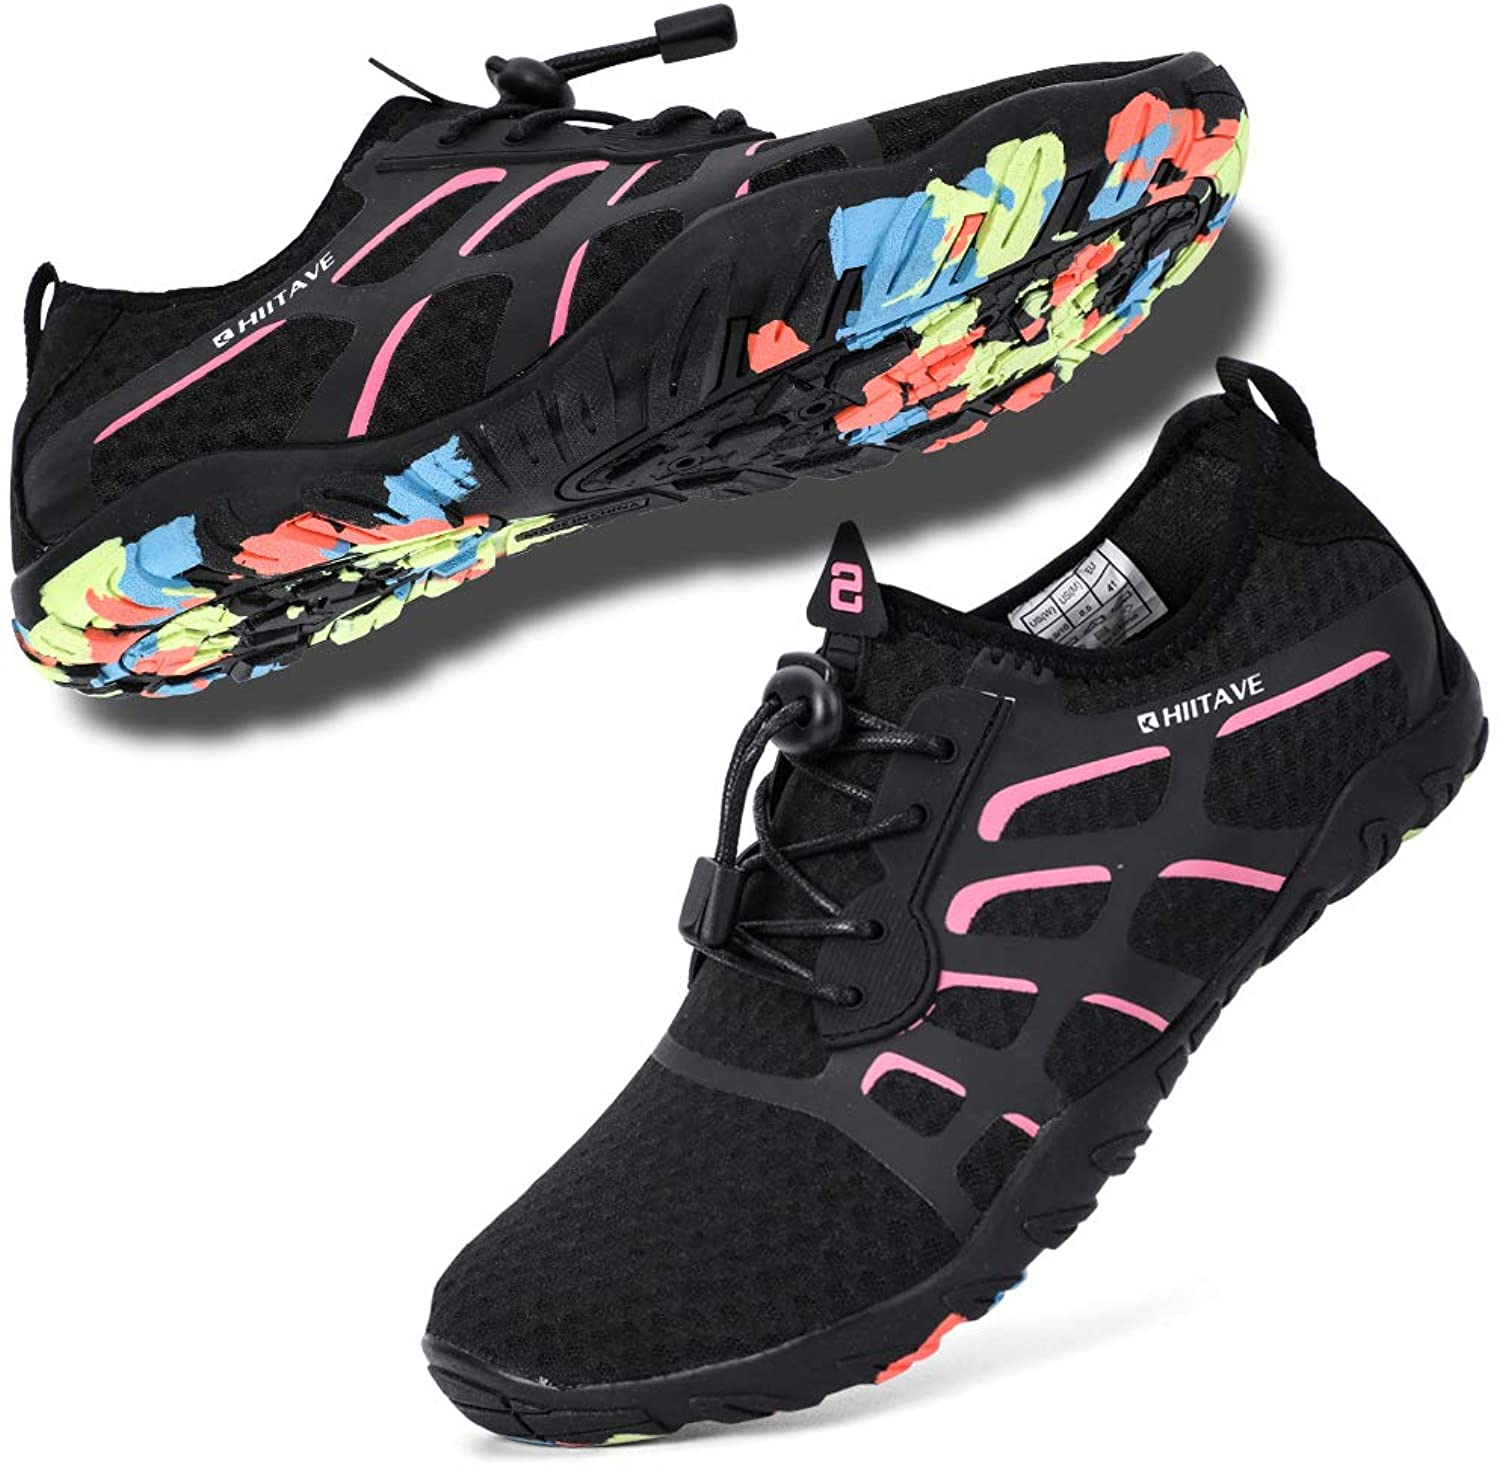 Hiitave Water shoes for Women, Ladies Aqua Beach Swimming shoes for Diving, Surf, Pool, Kayaking Black Fushia W7.5 M6.5